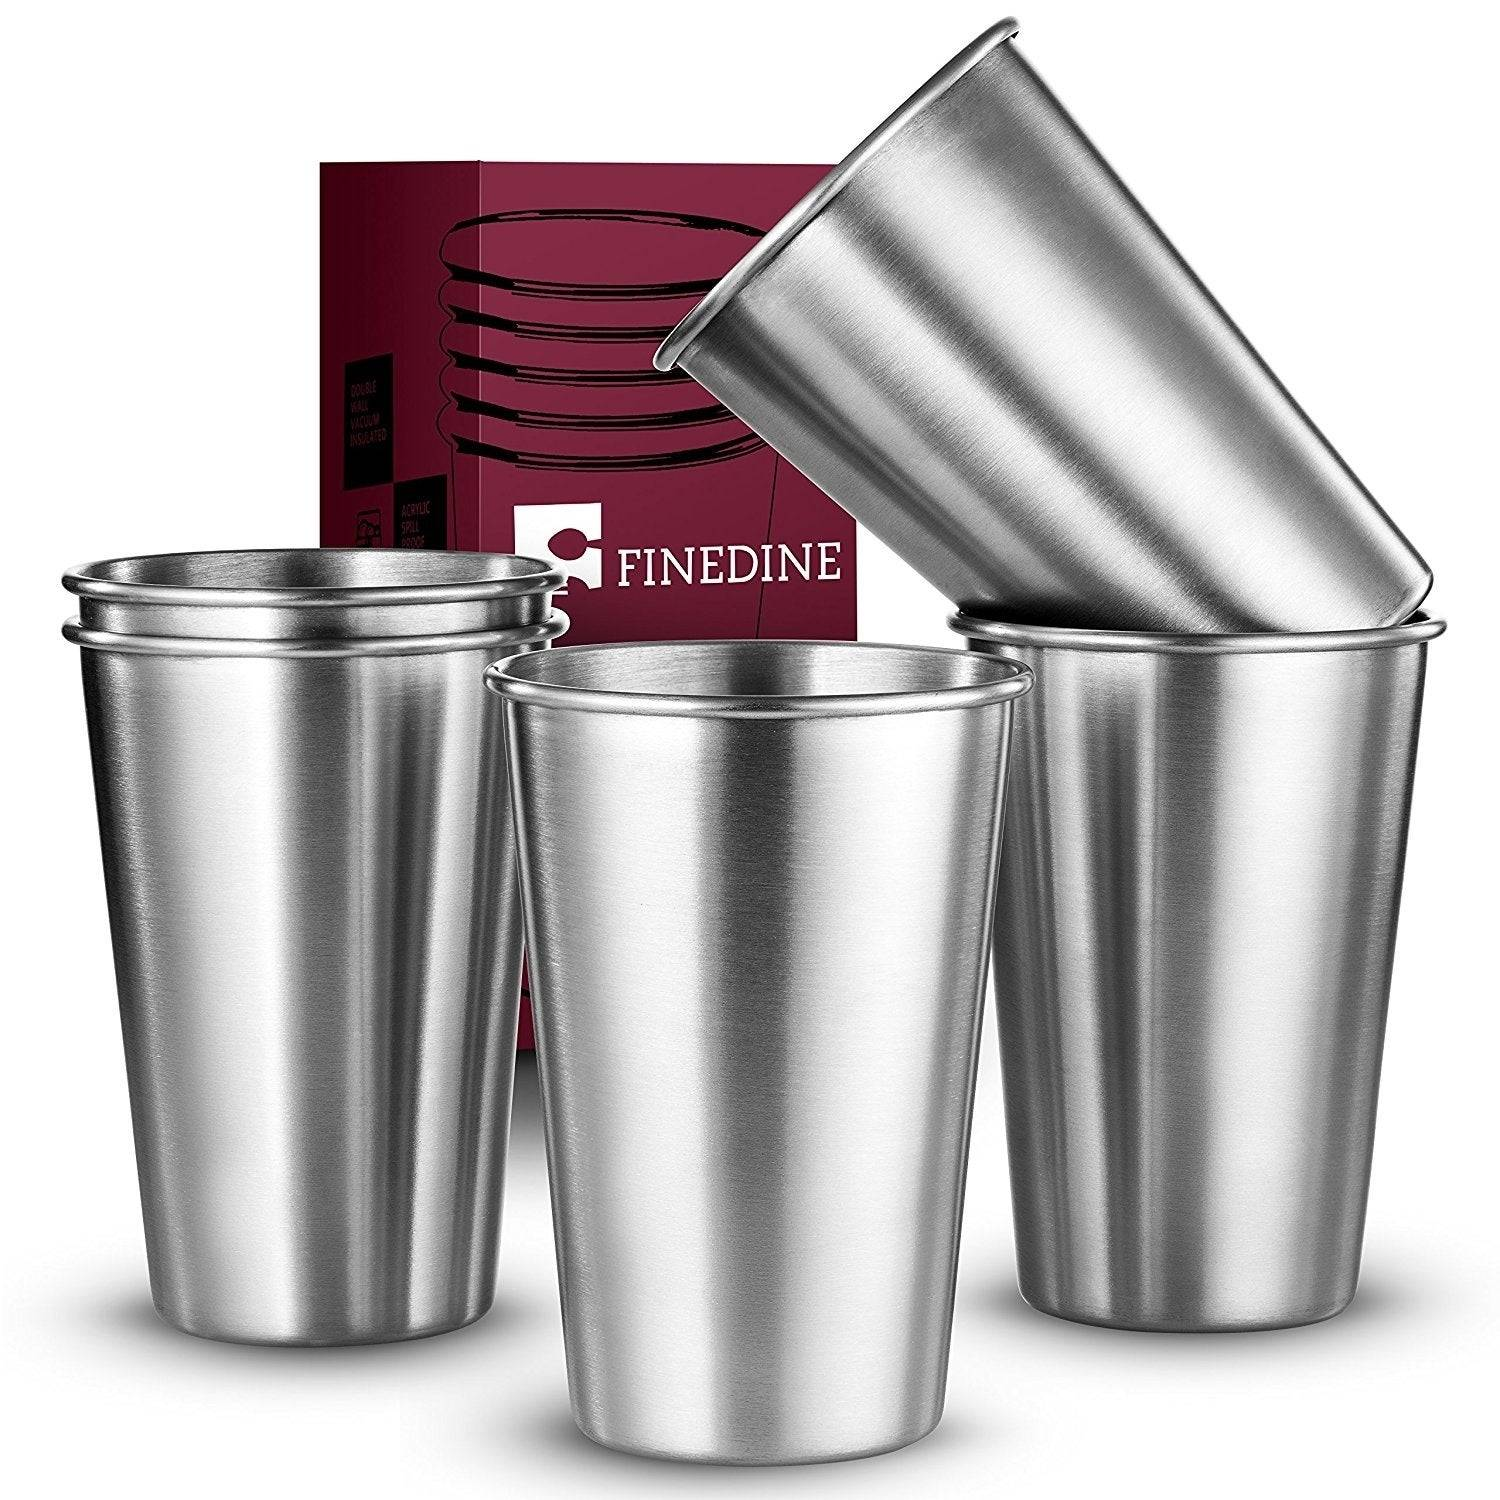 Premium Grade Stainless Steel Pint Cups Water Tumblers 5 Piece Unbreakable Stackable Brushed Metal Drinking Glasses 0f f06b 43d8 817c a38c738a717e